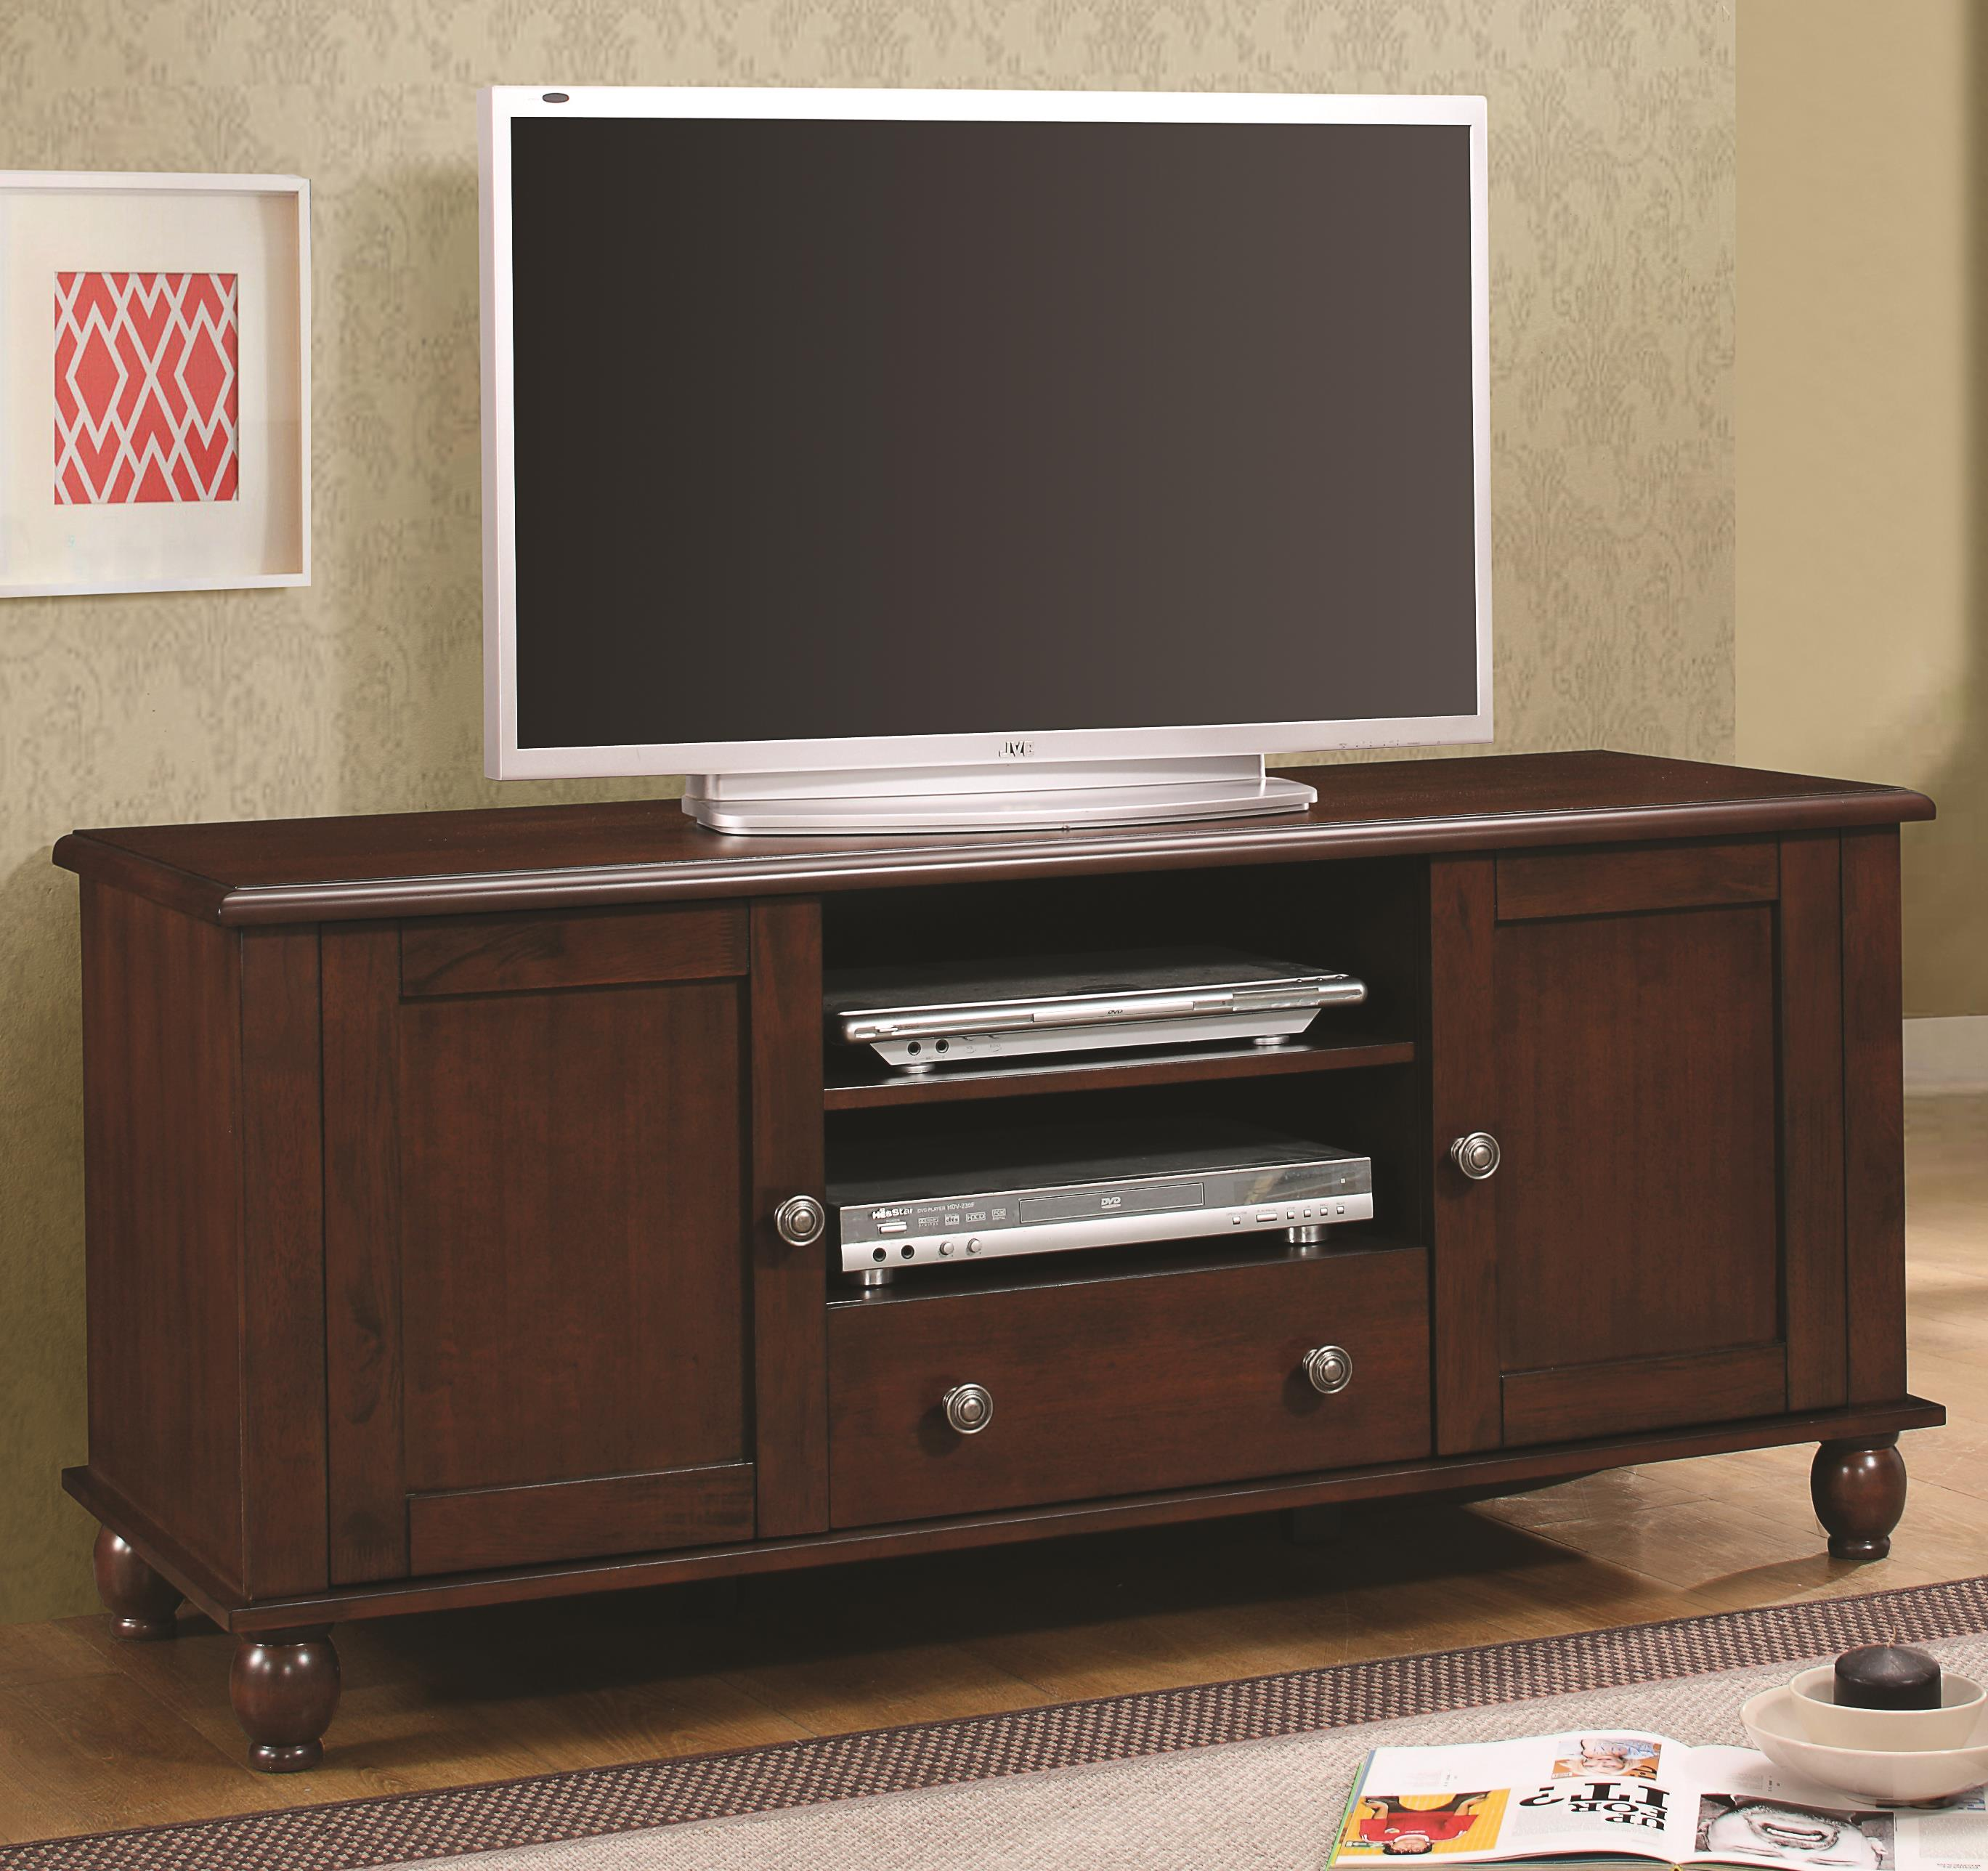 Tv Stands Transitional Console In Merlot Finish